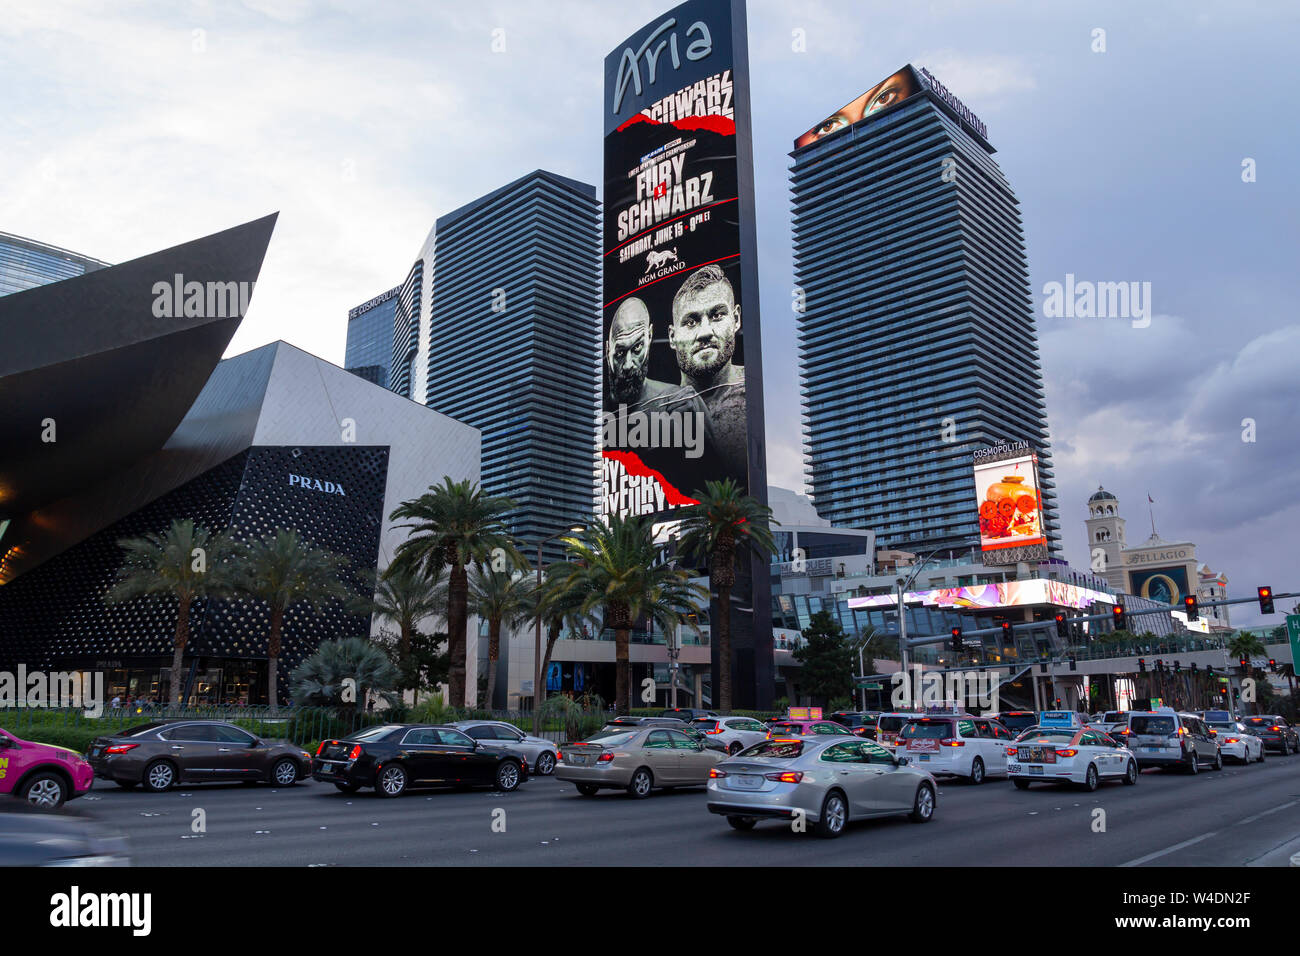 Las Vegas Strip, casino and hotels city view with modern architecture and luxury stores Stock Photo